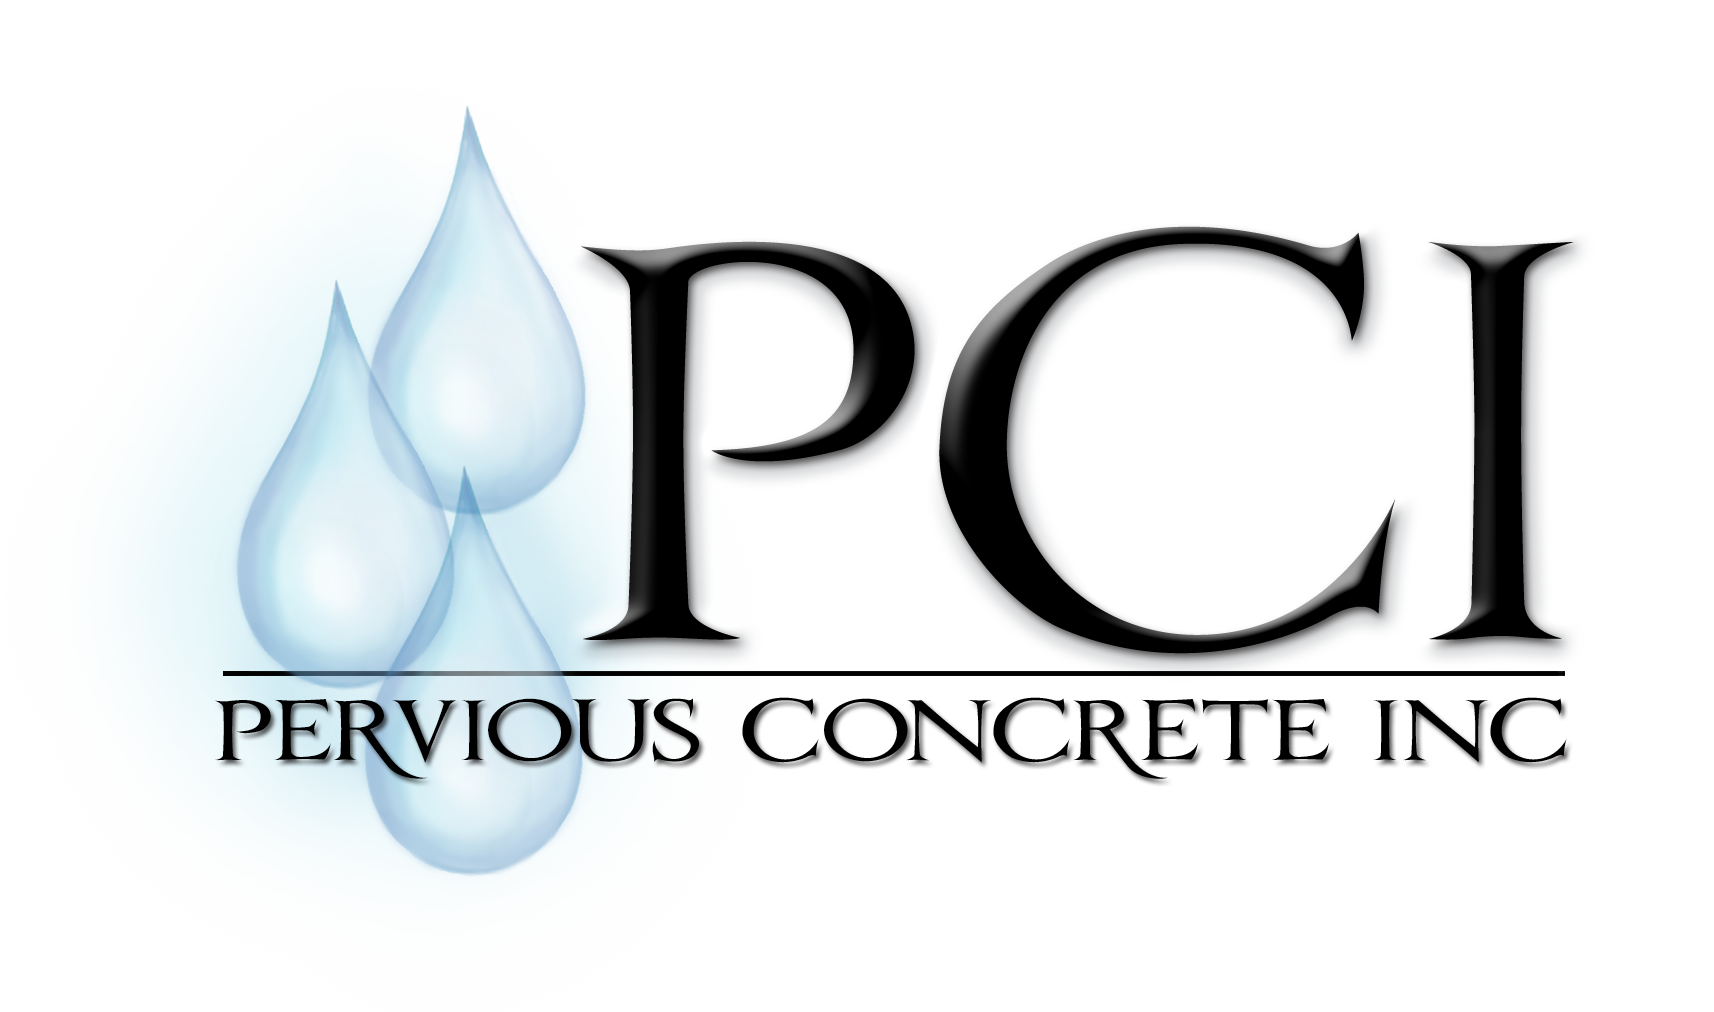 Pervious Concrete Inc.